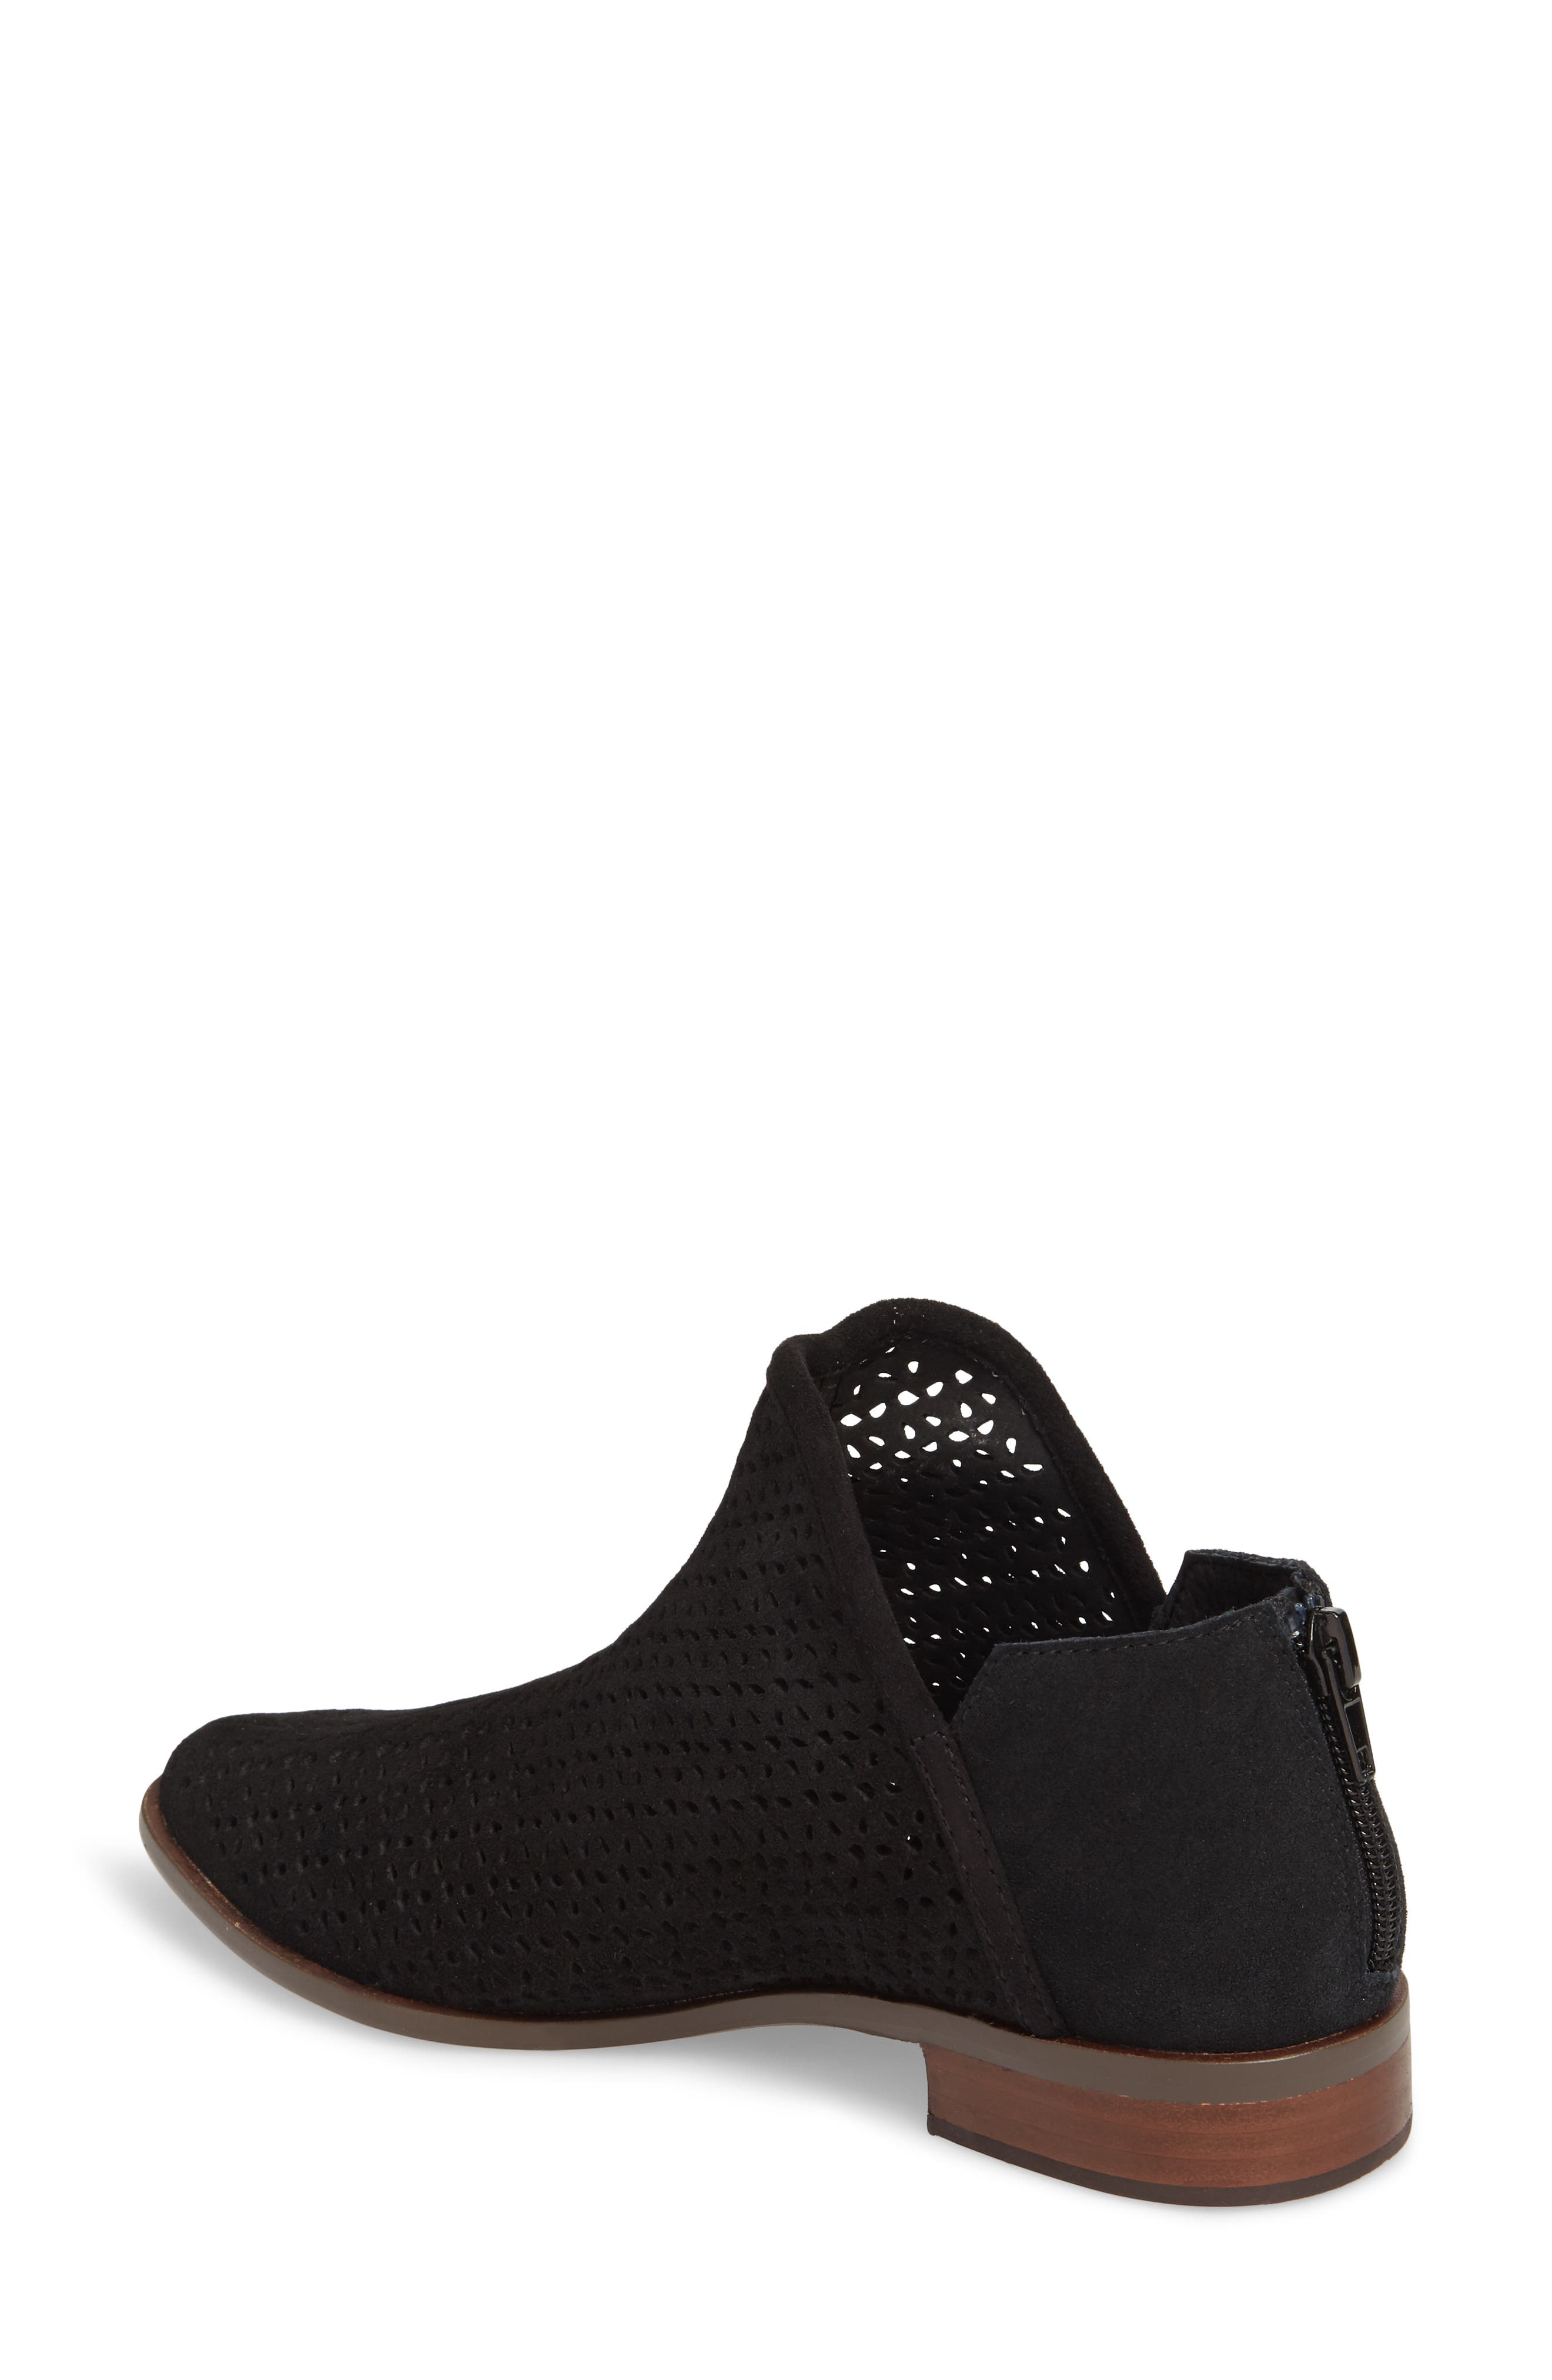 Alley Perforated Bootie,                             Alternate thumbnail 2, color,                             001